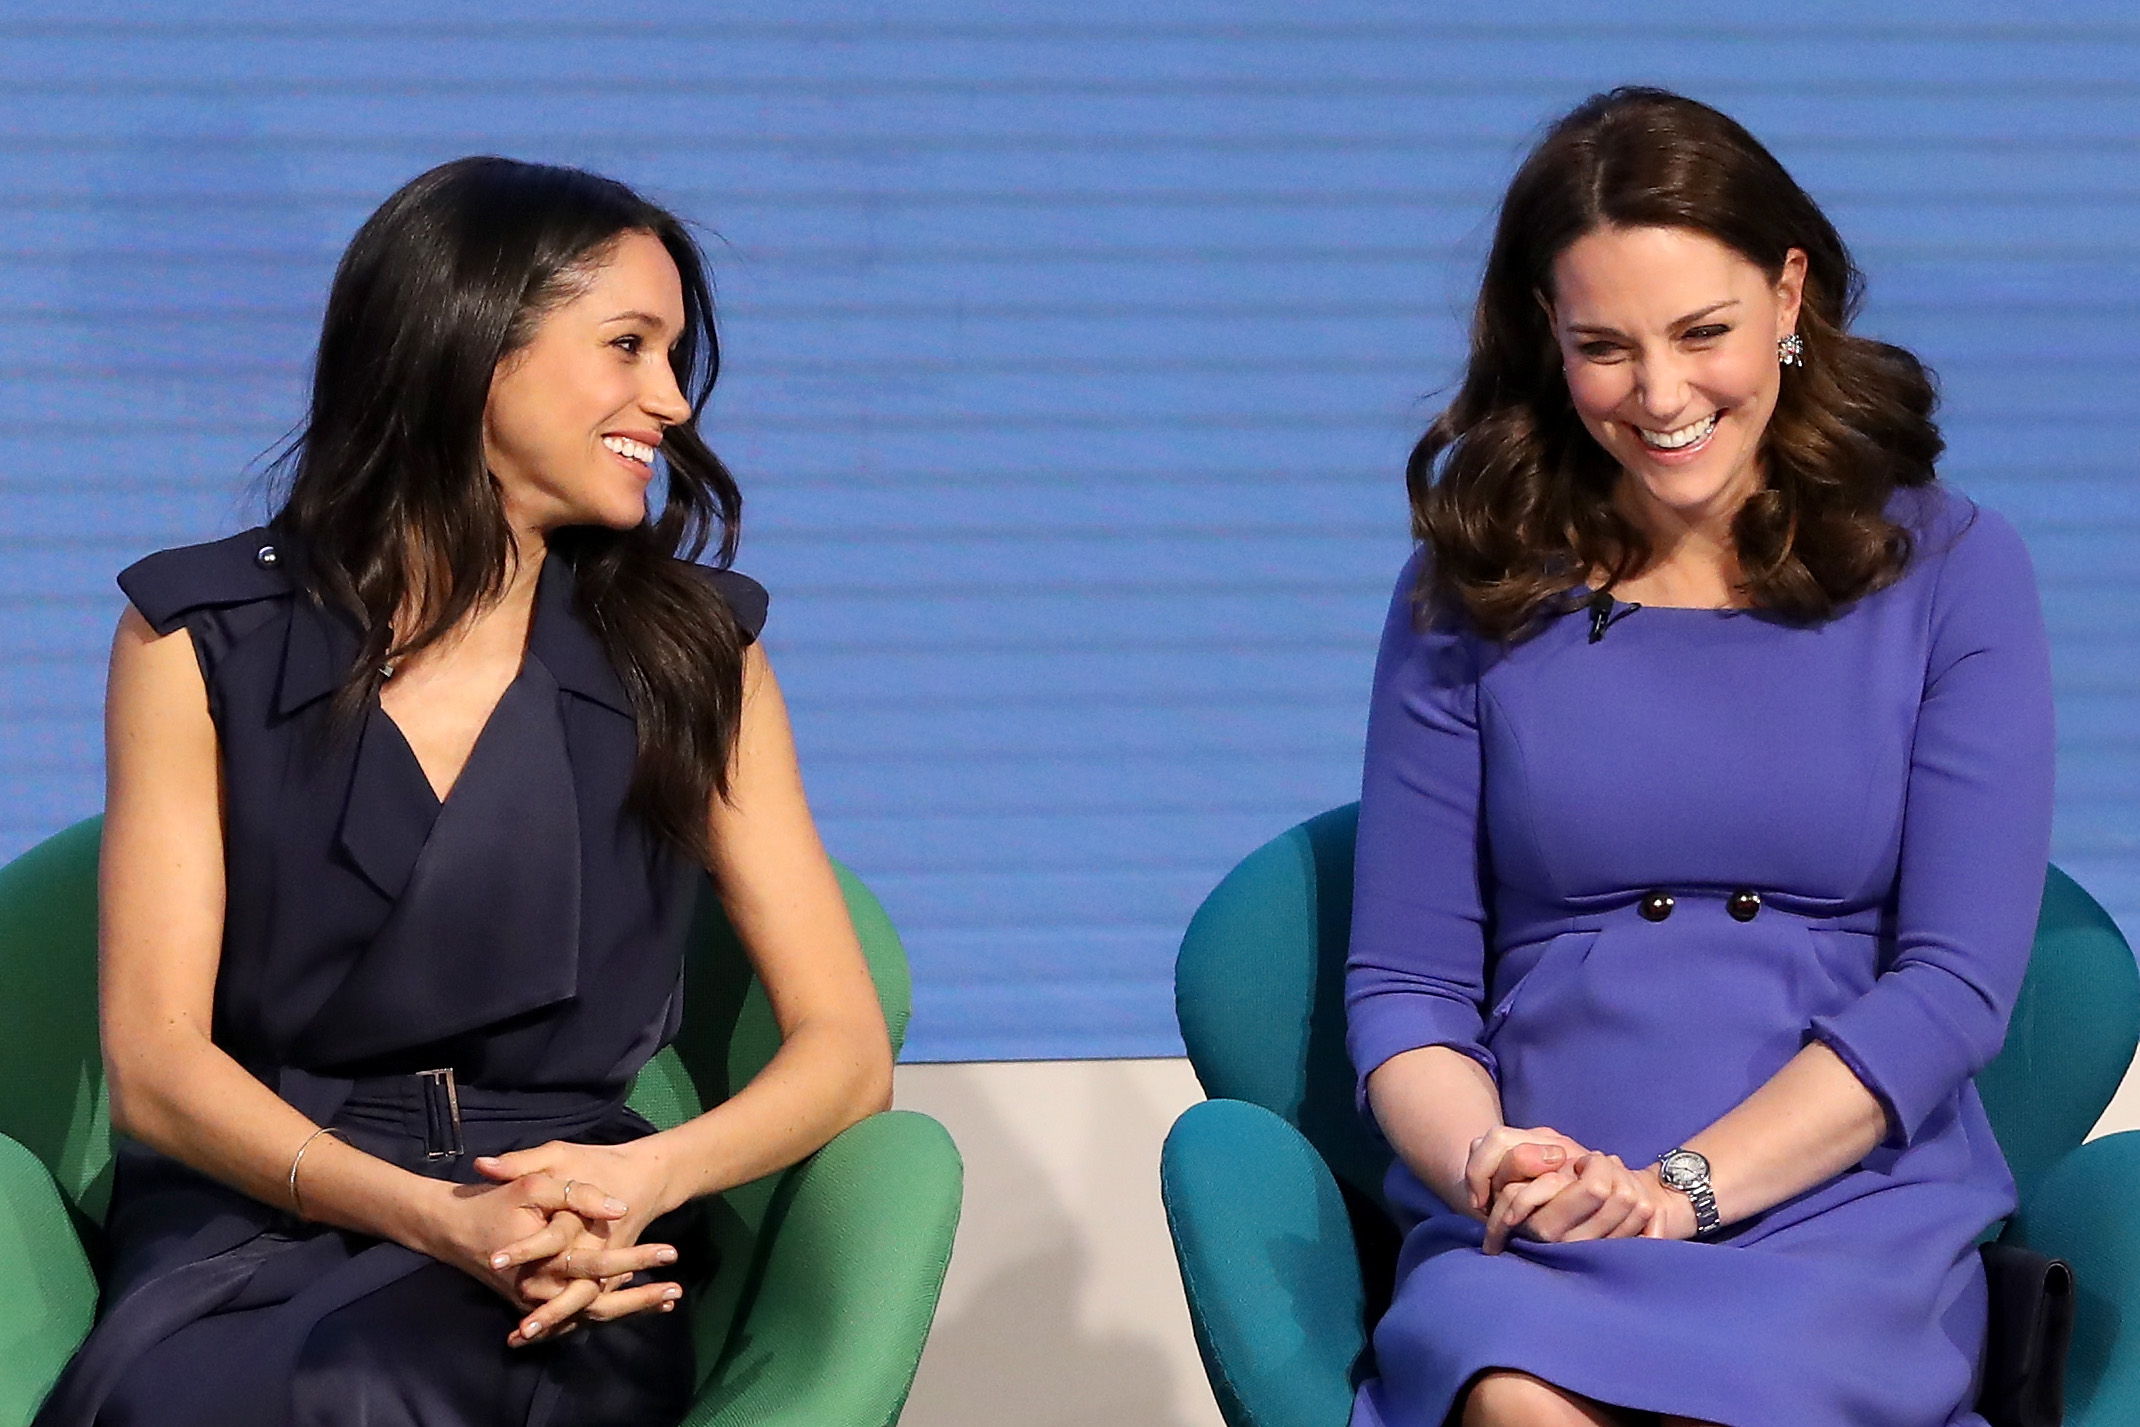 Meghan Markle, Duchess of Sussex, and Catherine, Duchess of Cambridge, attend the first annual Royal Foundation Forum held at Aviva on February 28, 2018, in London, England. (Getty Images)